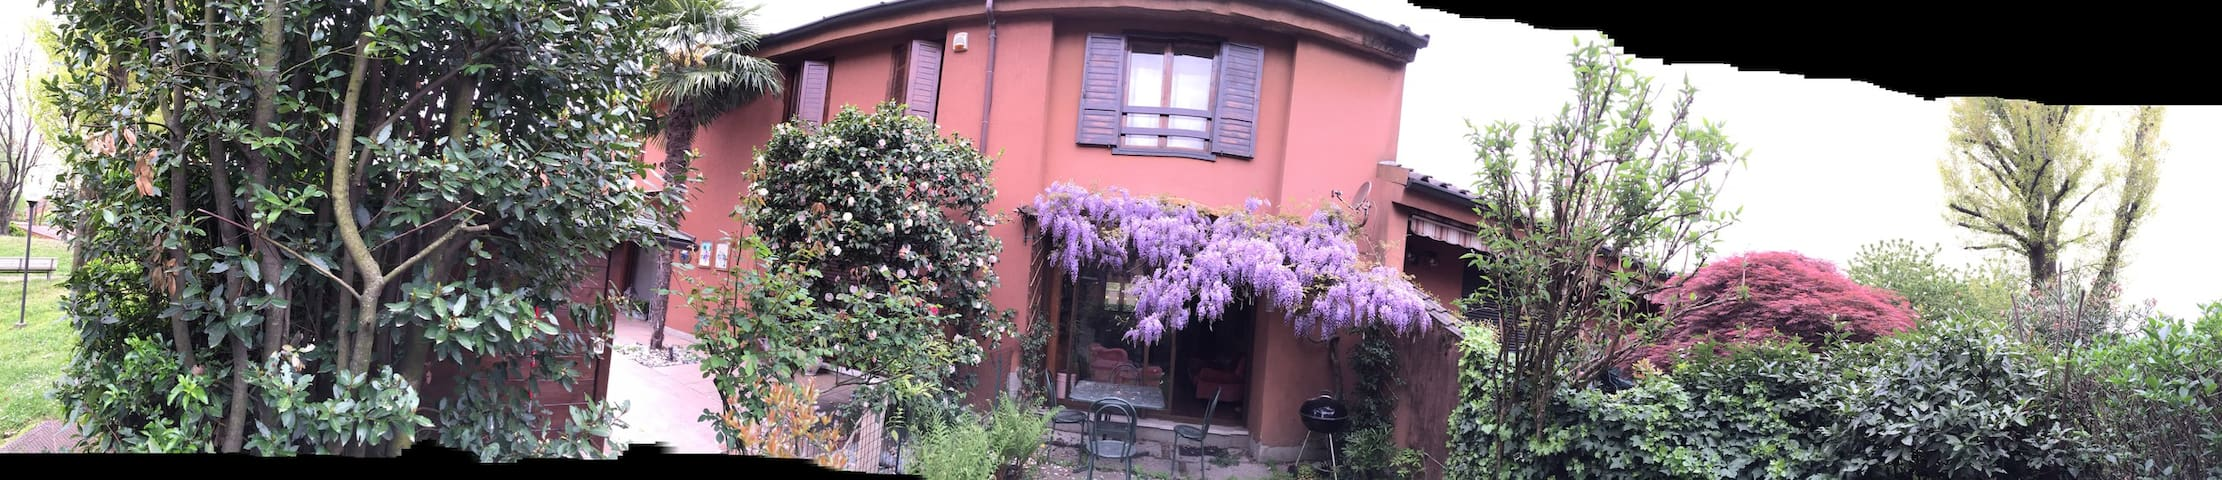 Glycine Villa 30 min from Milan - Arlate - Ev